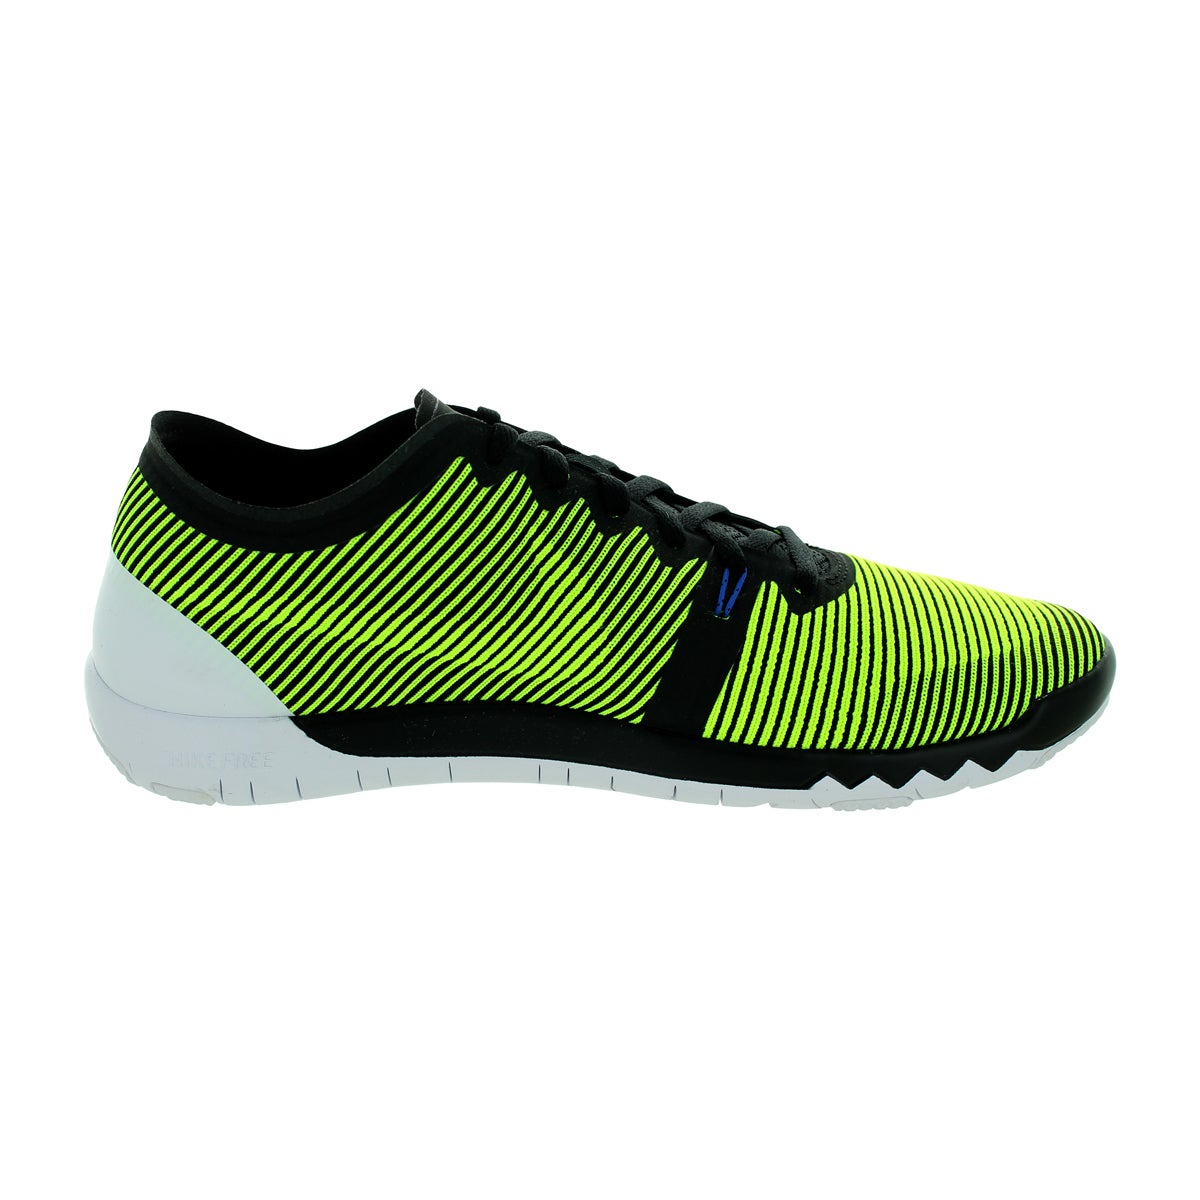 newest collection 76b72 5a988 Shop Nike Men s Free Trainer 3.0 V4 Black Volt Cactus White Training Shoe -  Free Shipping Today - Overstock - 12121312